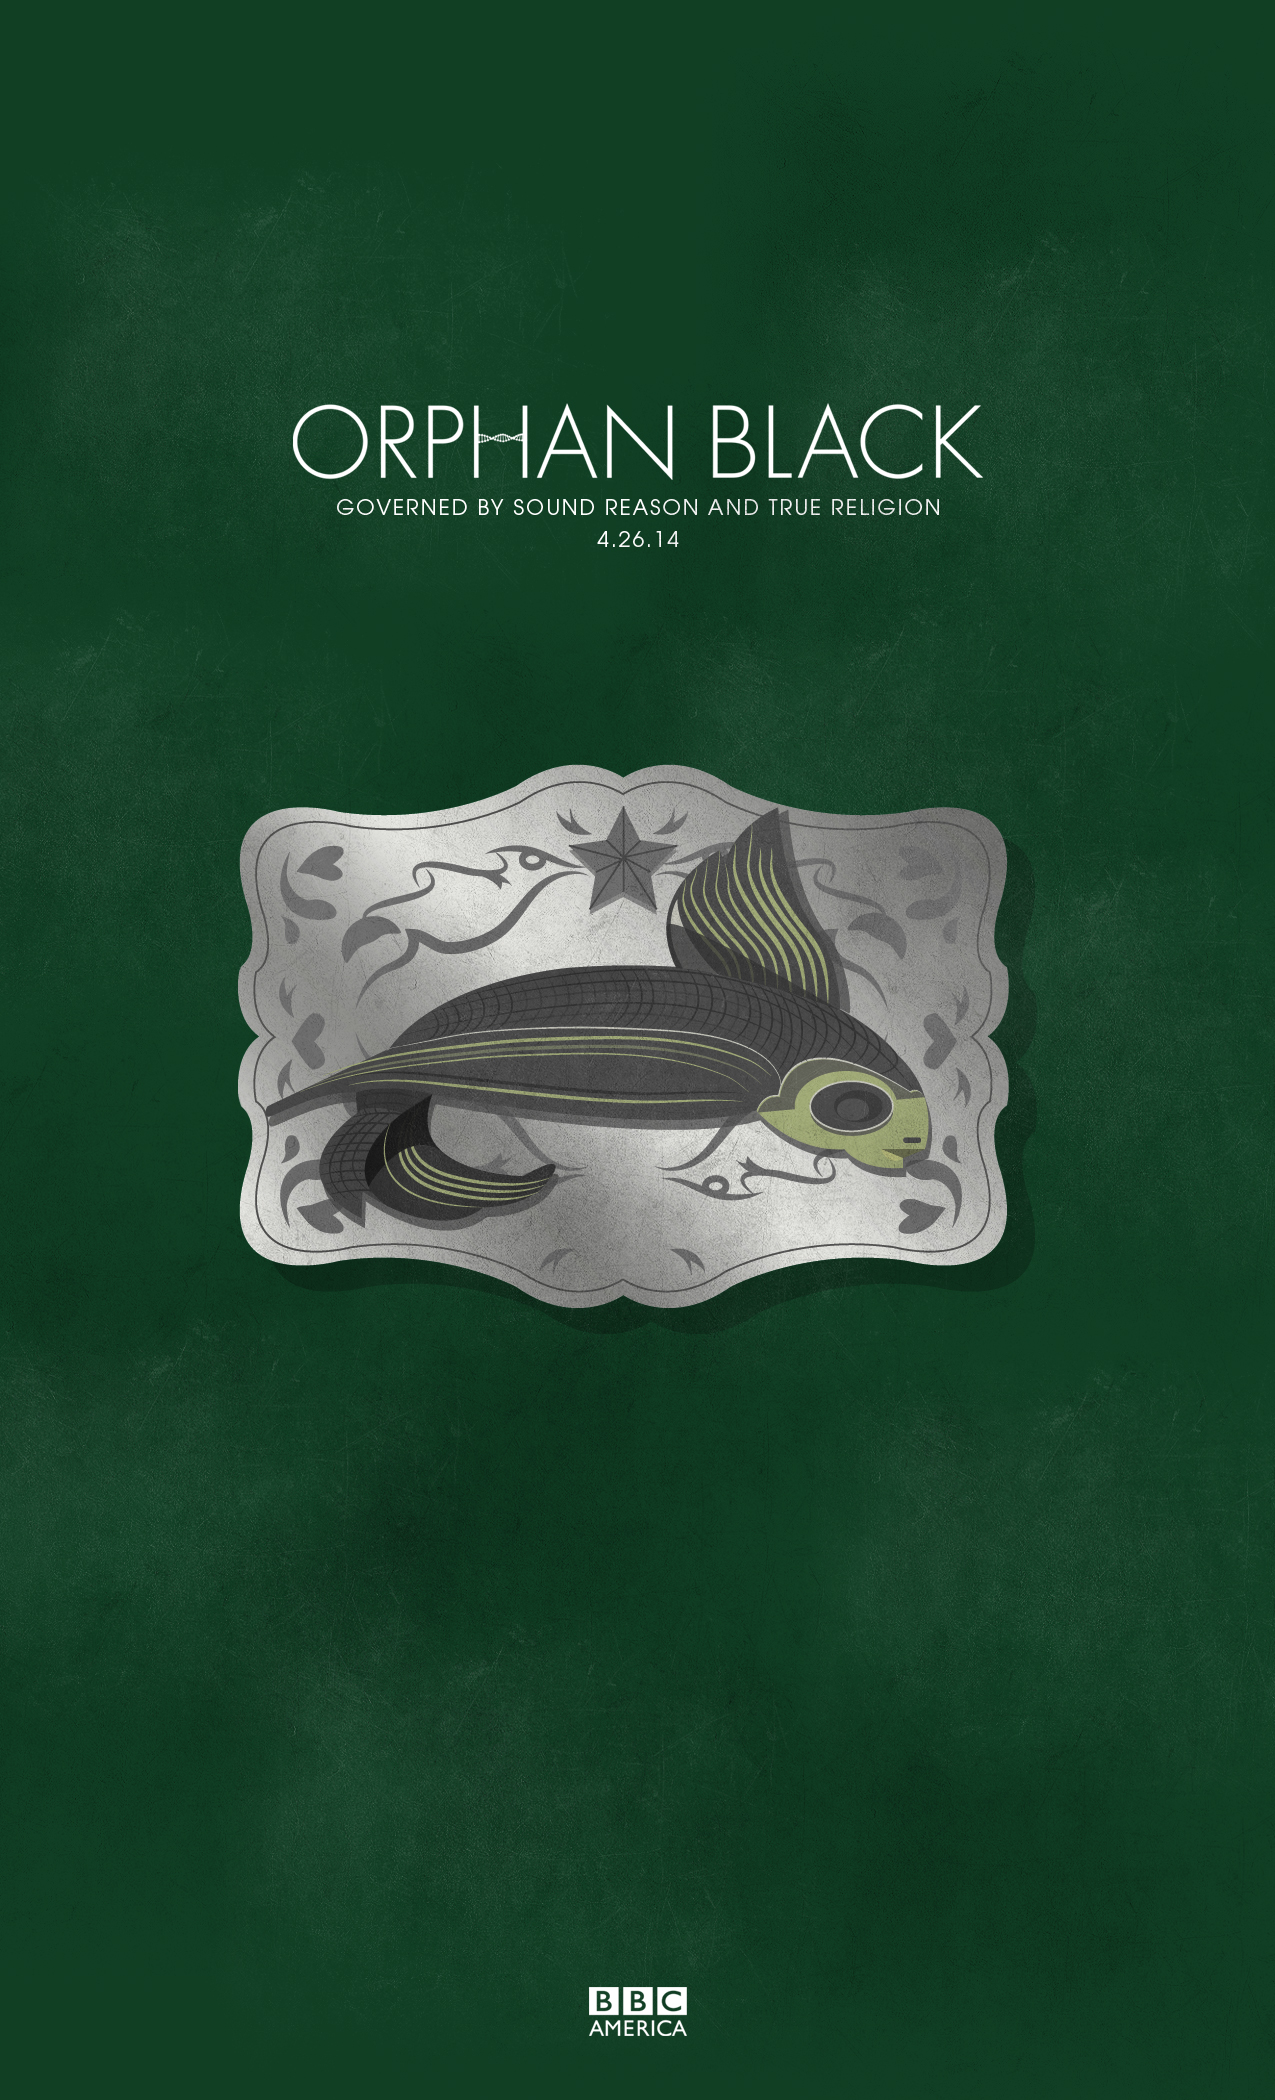 Orphan Black: Governed By Sound Reason and True Religion